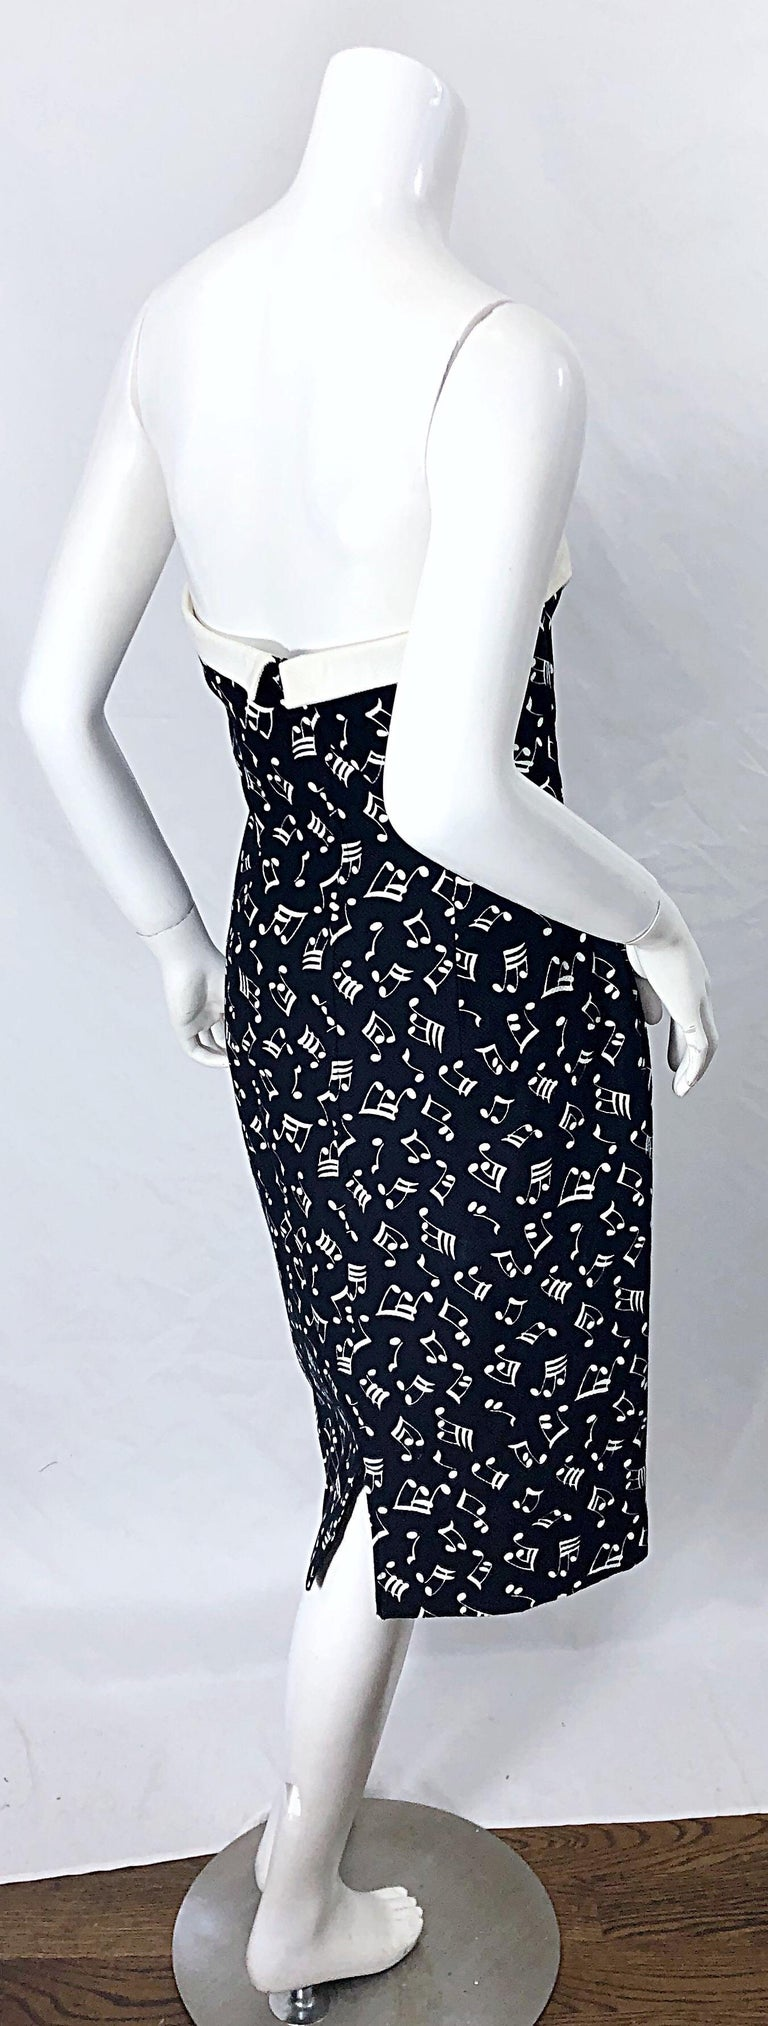 Women's 1980s Patrick Kelly Size 10 Novelty Music Print Black and White Strapless Dress For Sale